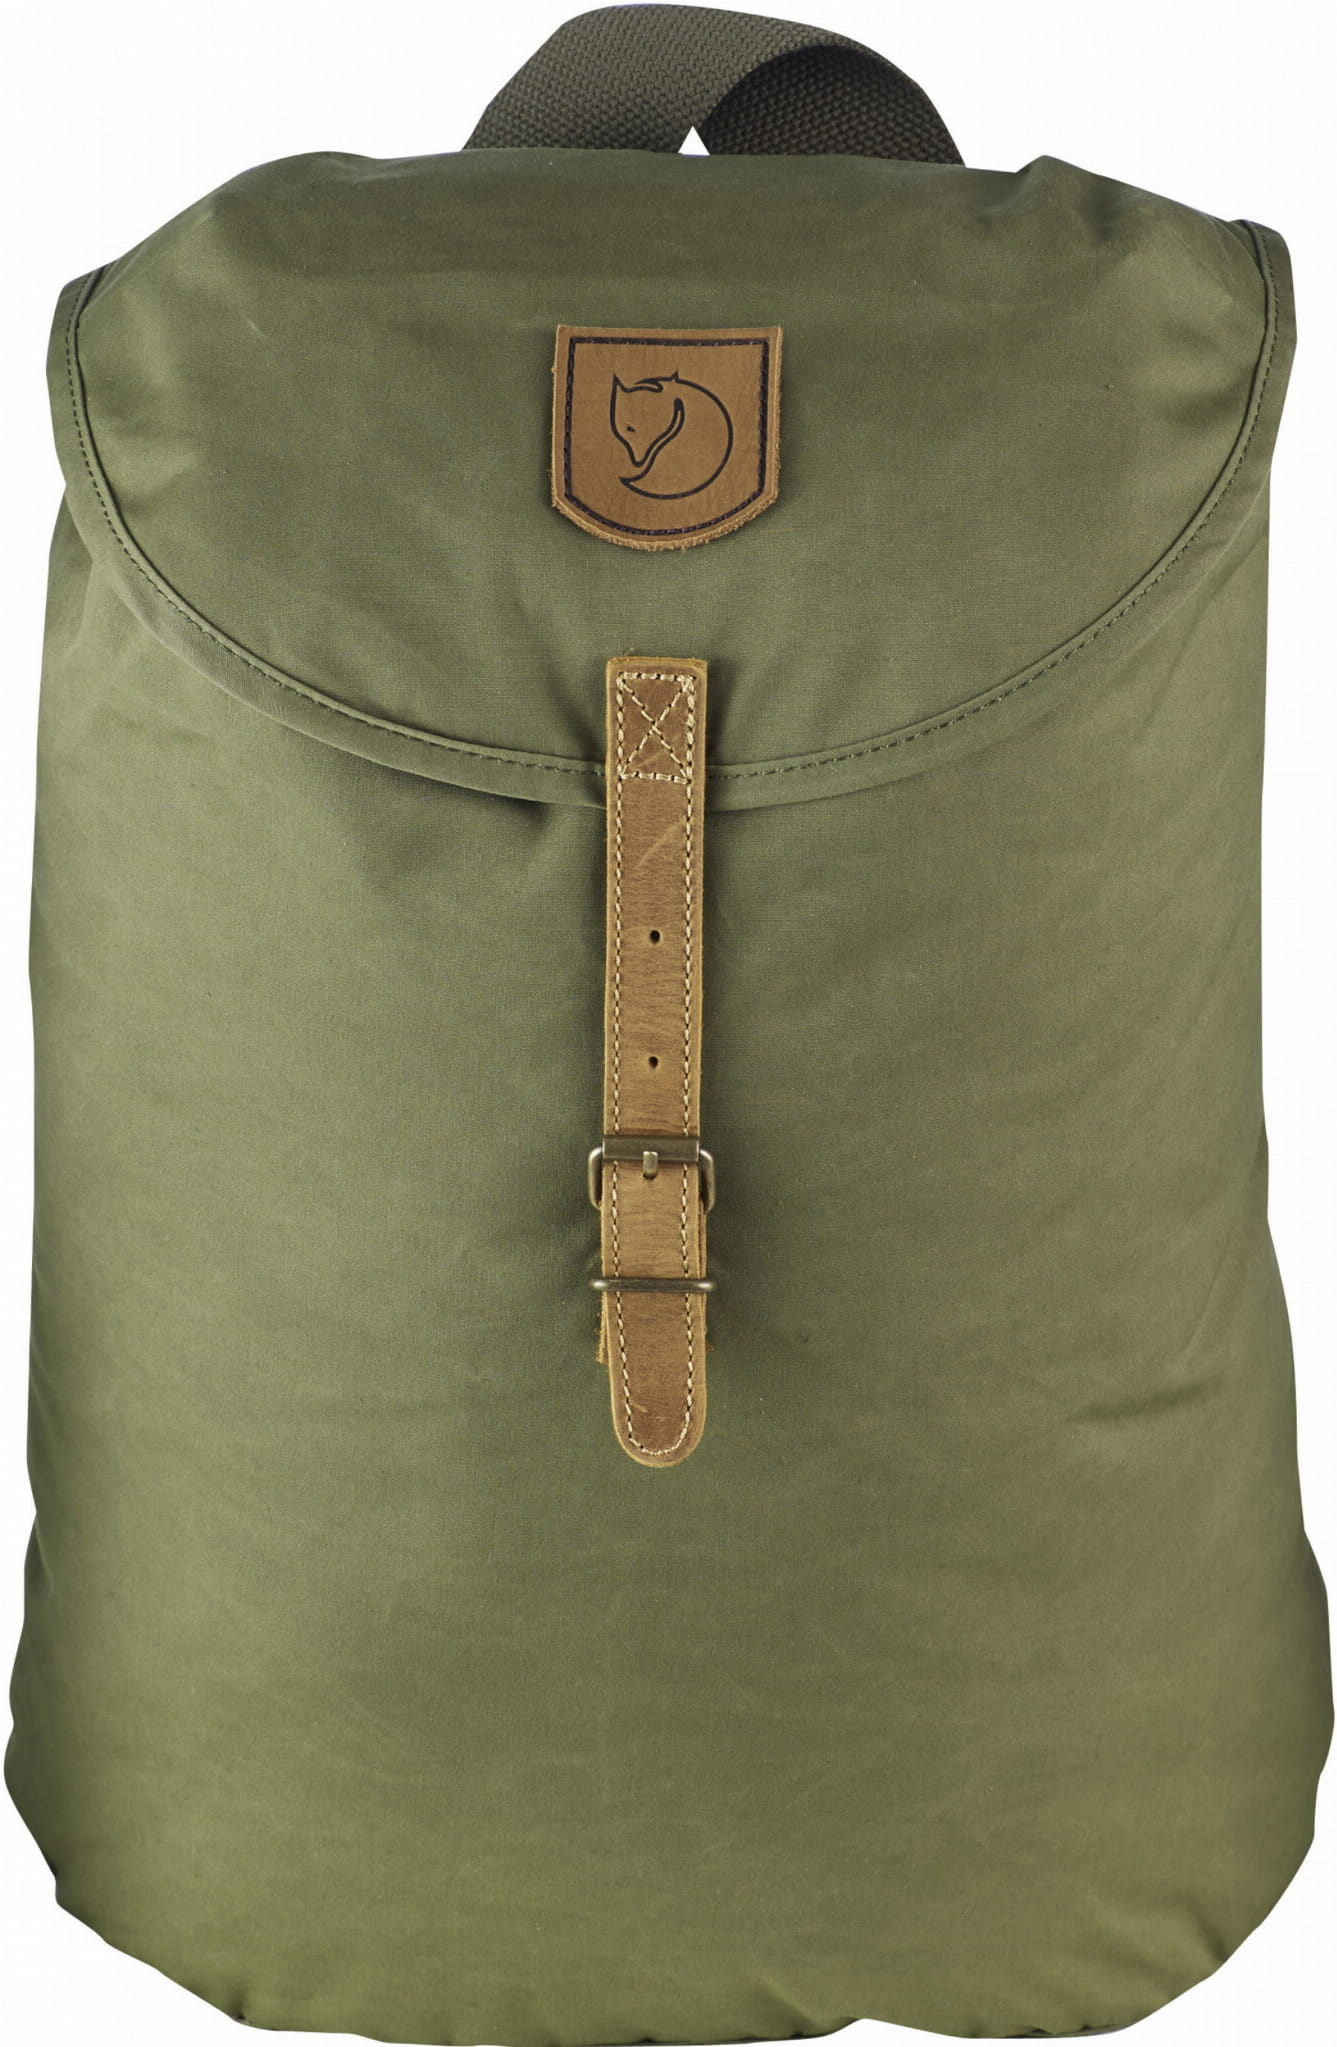 d409b43a0e81a Plecak Greenland Backpack Small Fjallraven - Kanken.pl